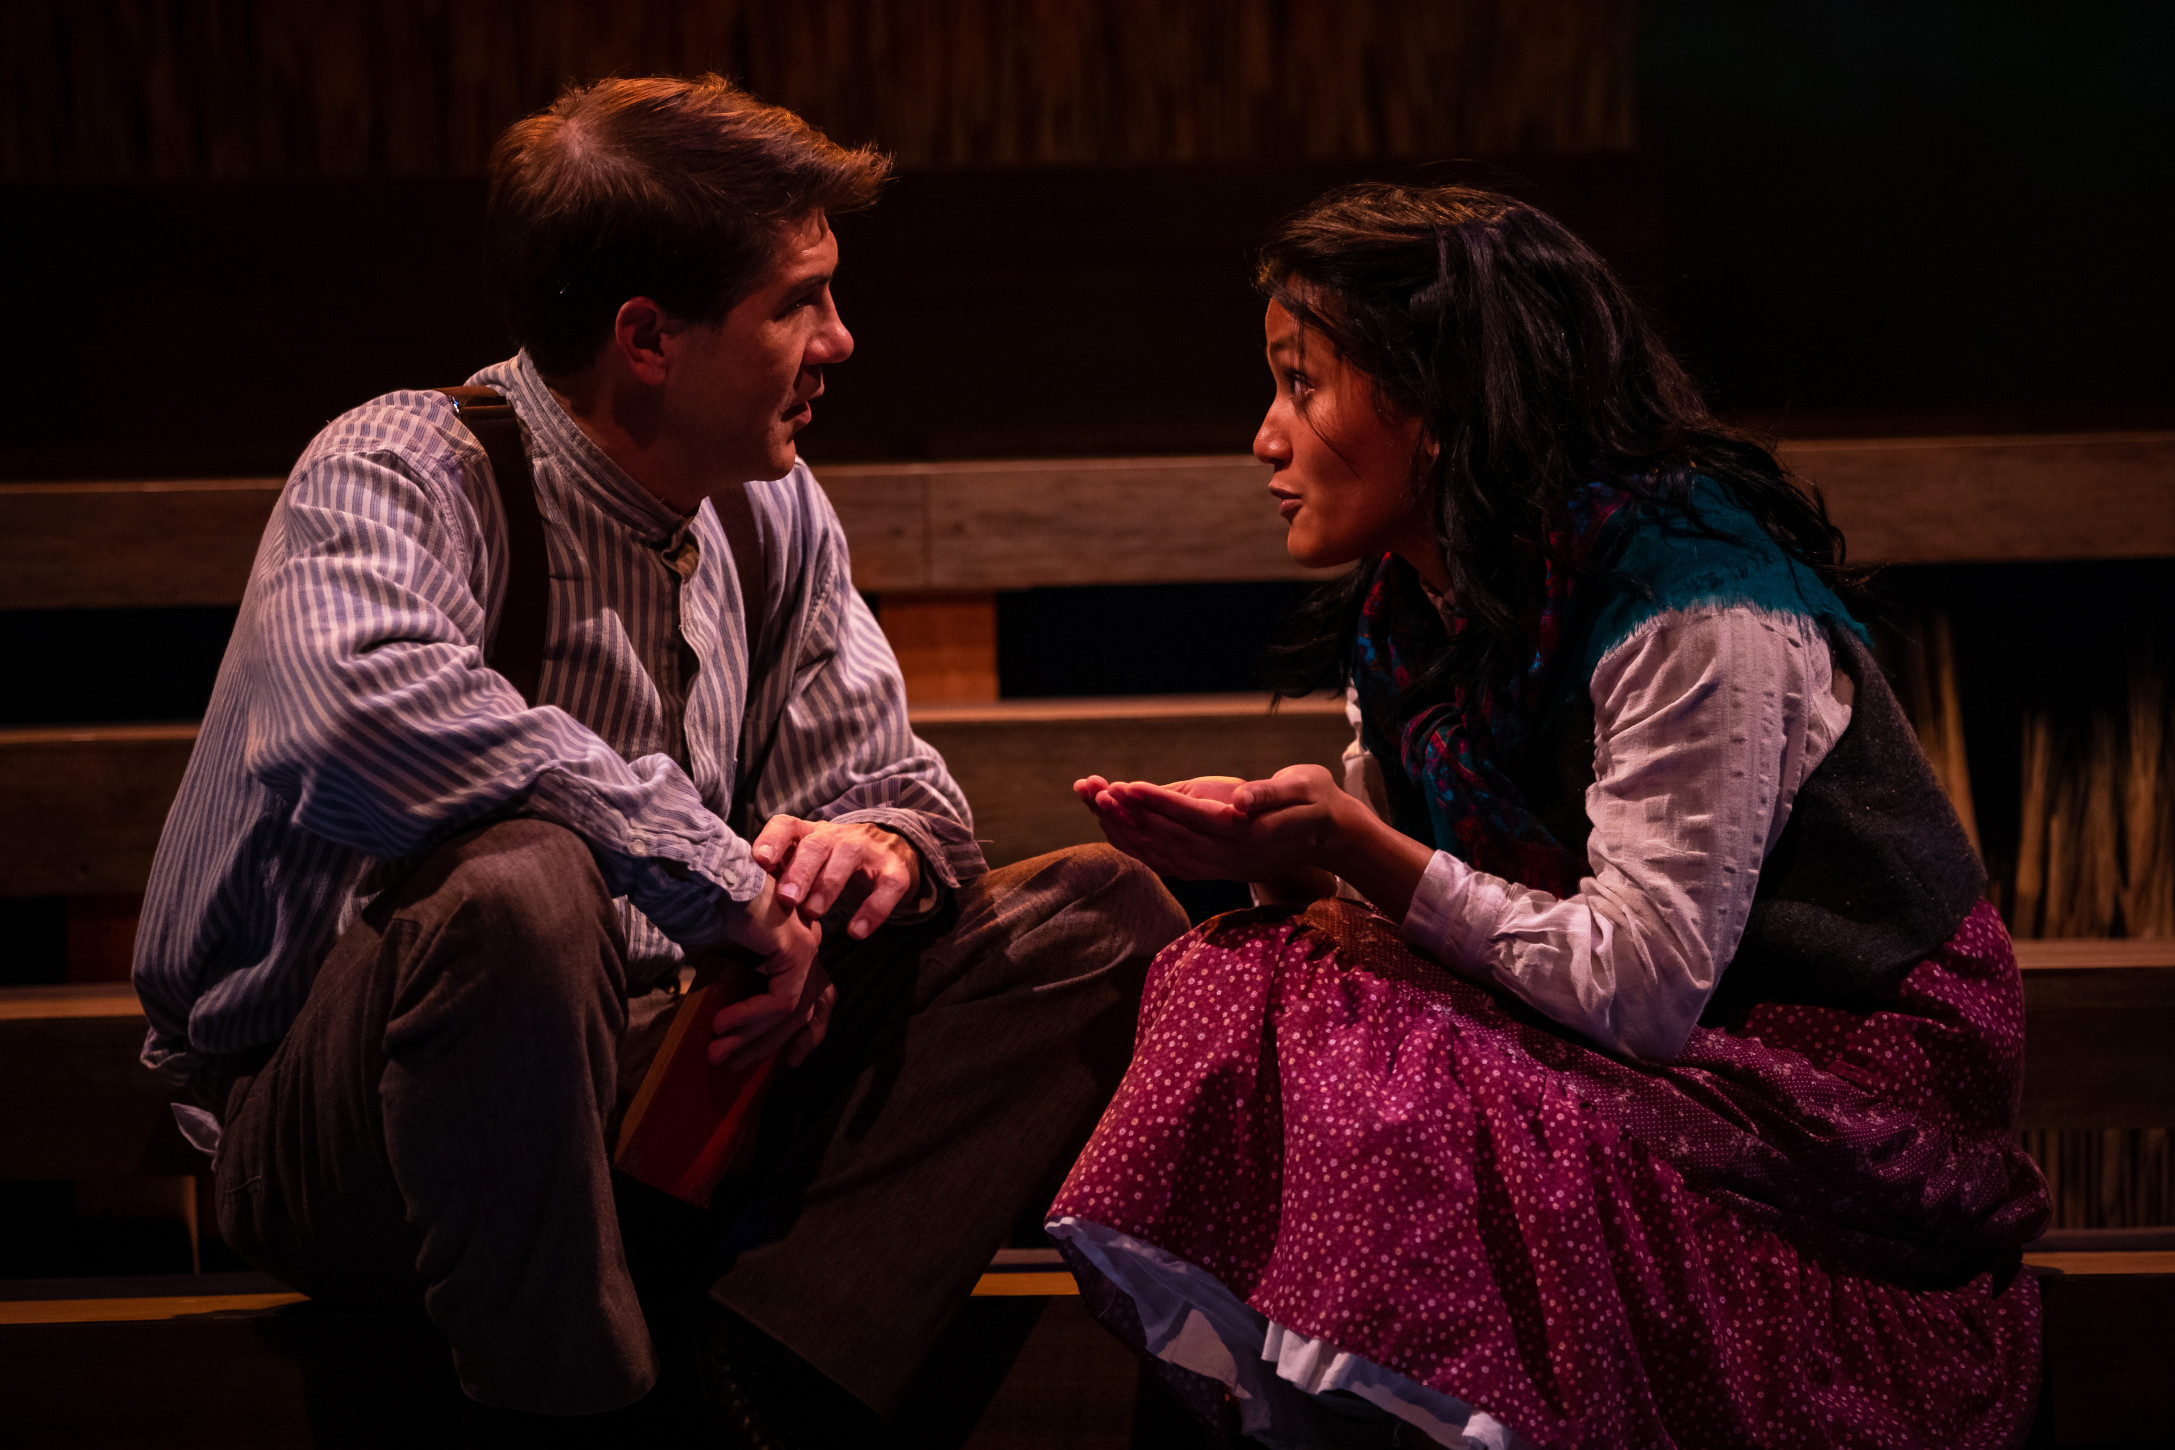 Tim Gouran (Jim Burden) and Nabilah S. Ahmed (Ántonia). Photo by John Ulman.